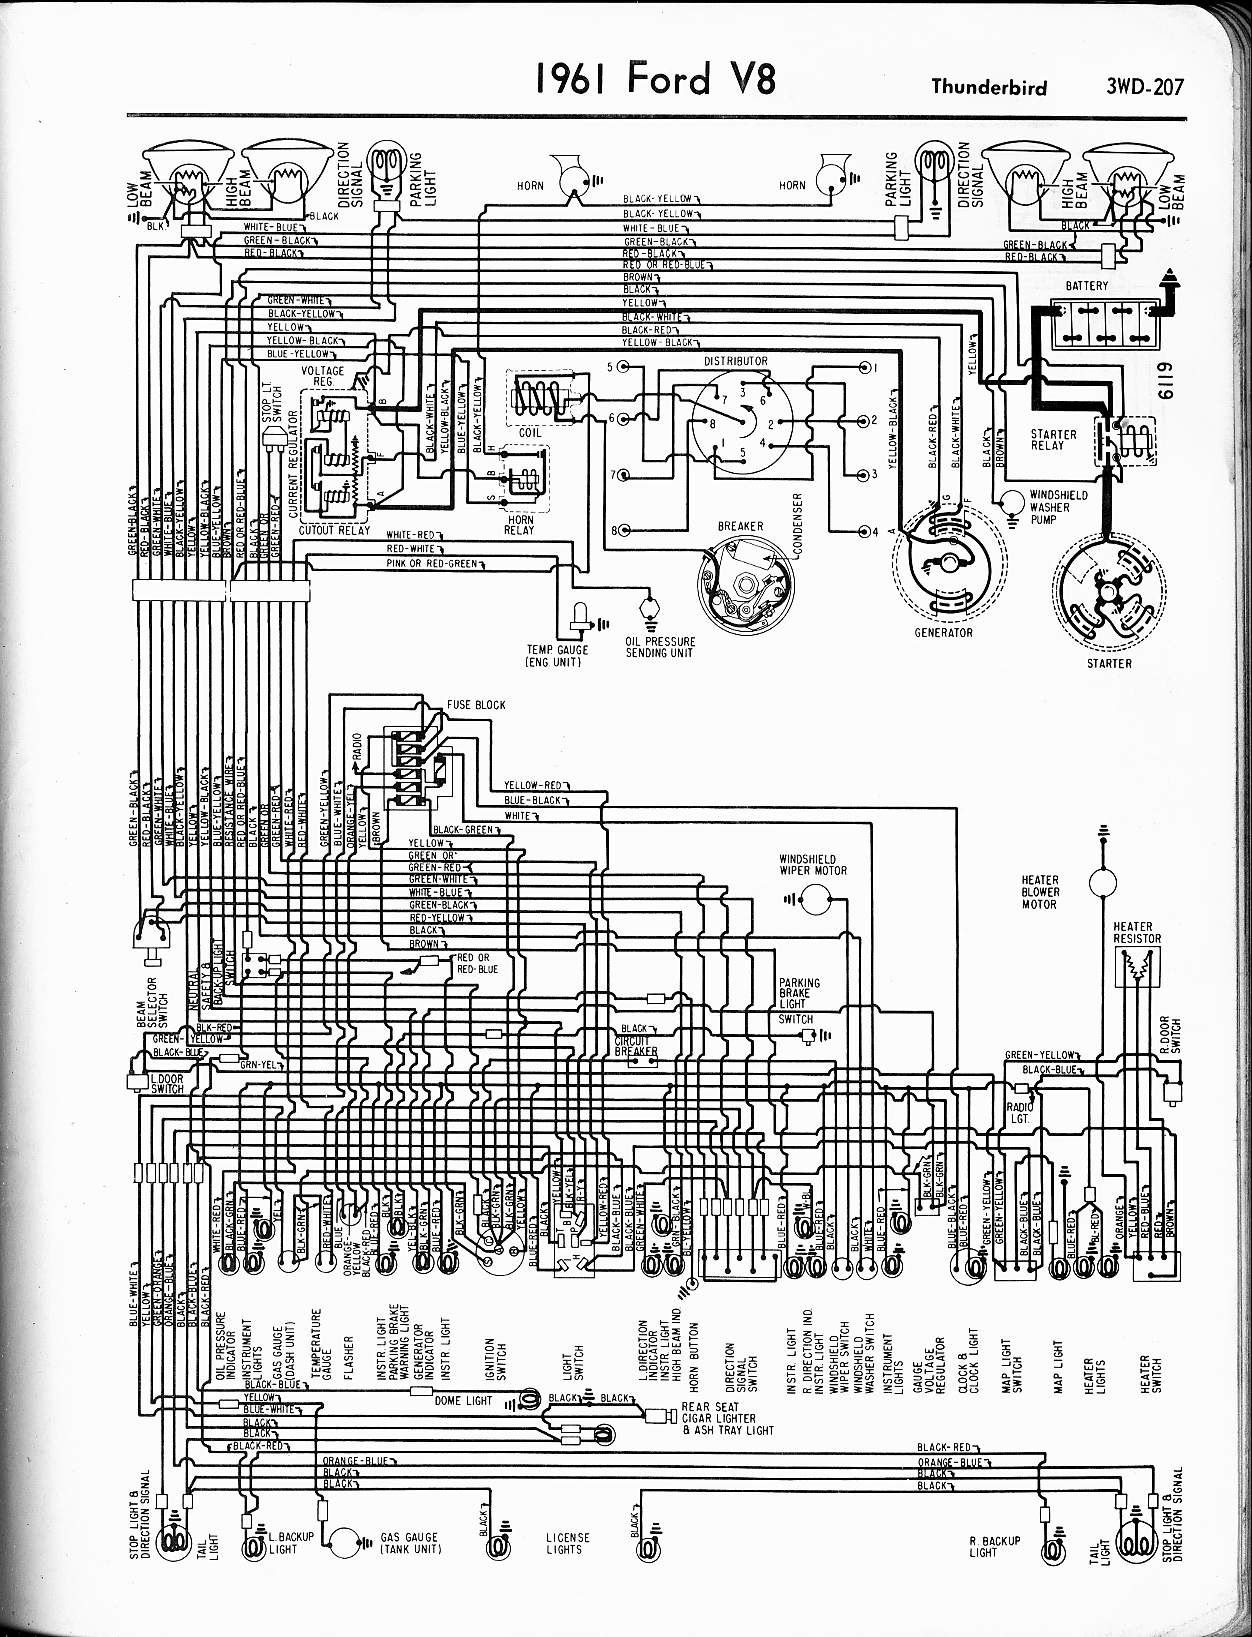 MWire5765 207 57 65 ford wiring diagrams ford wiring harness diagrams at crackthecode.co